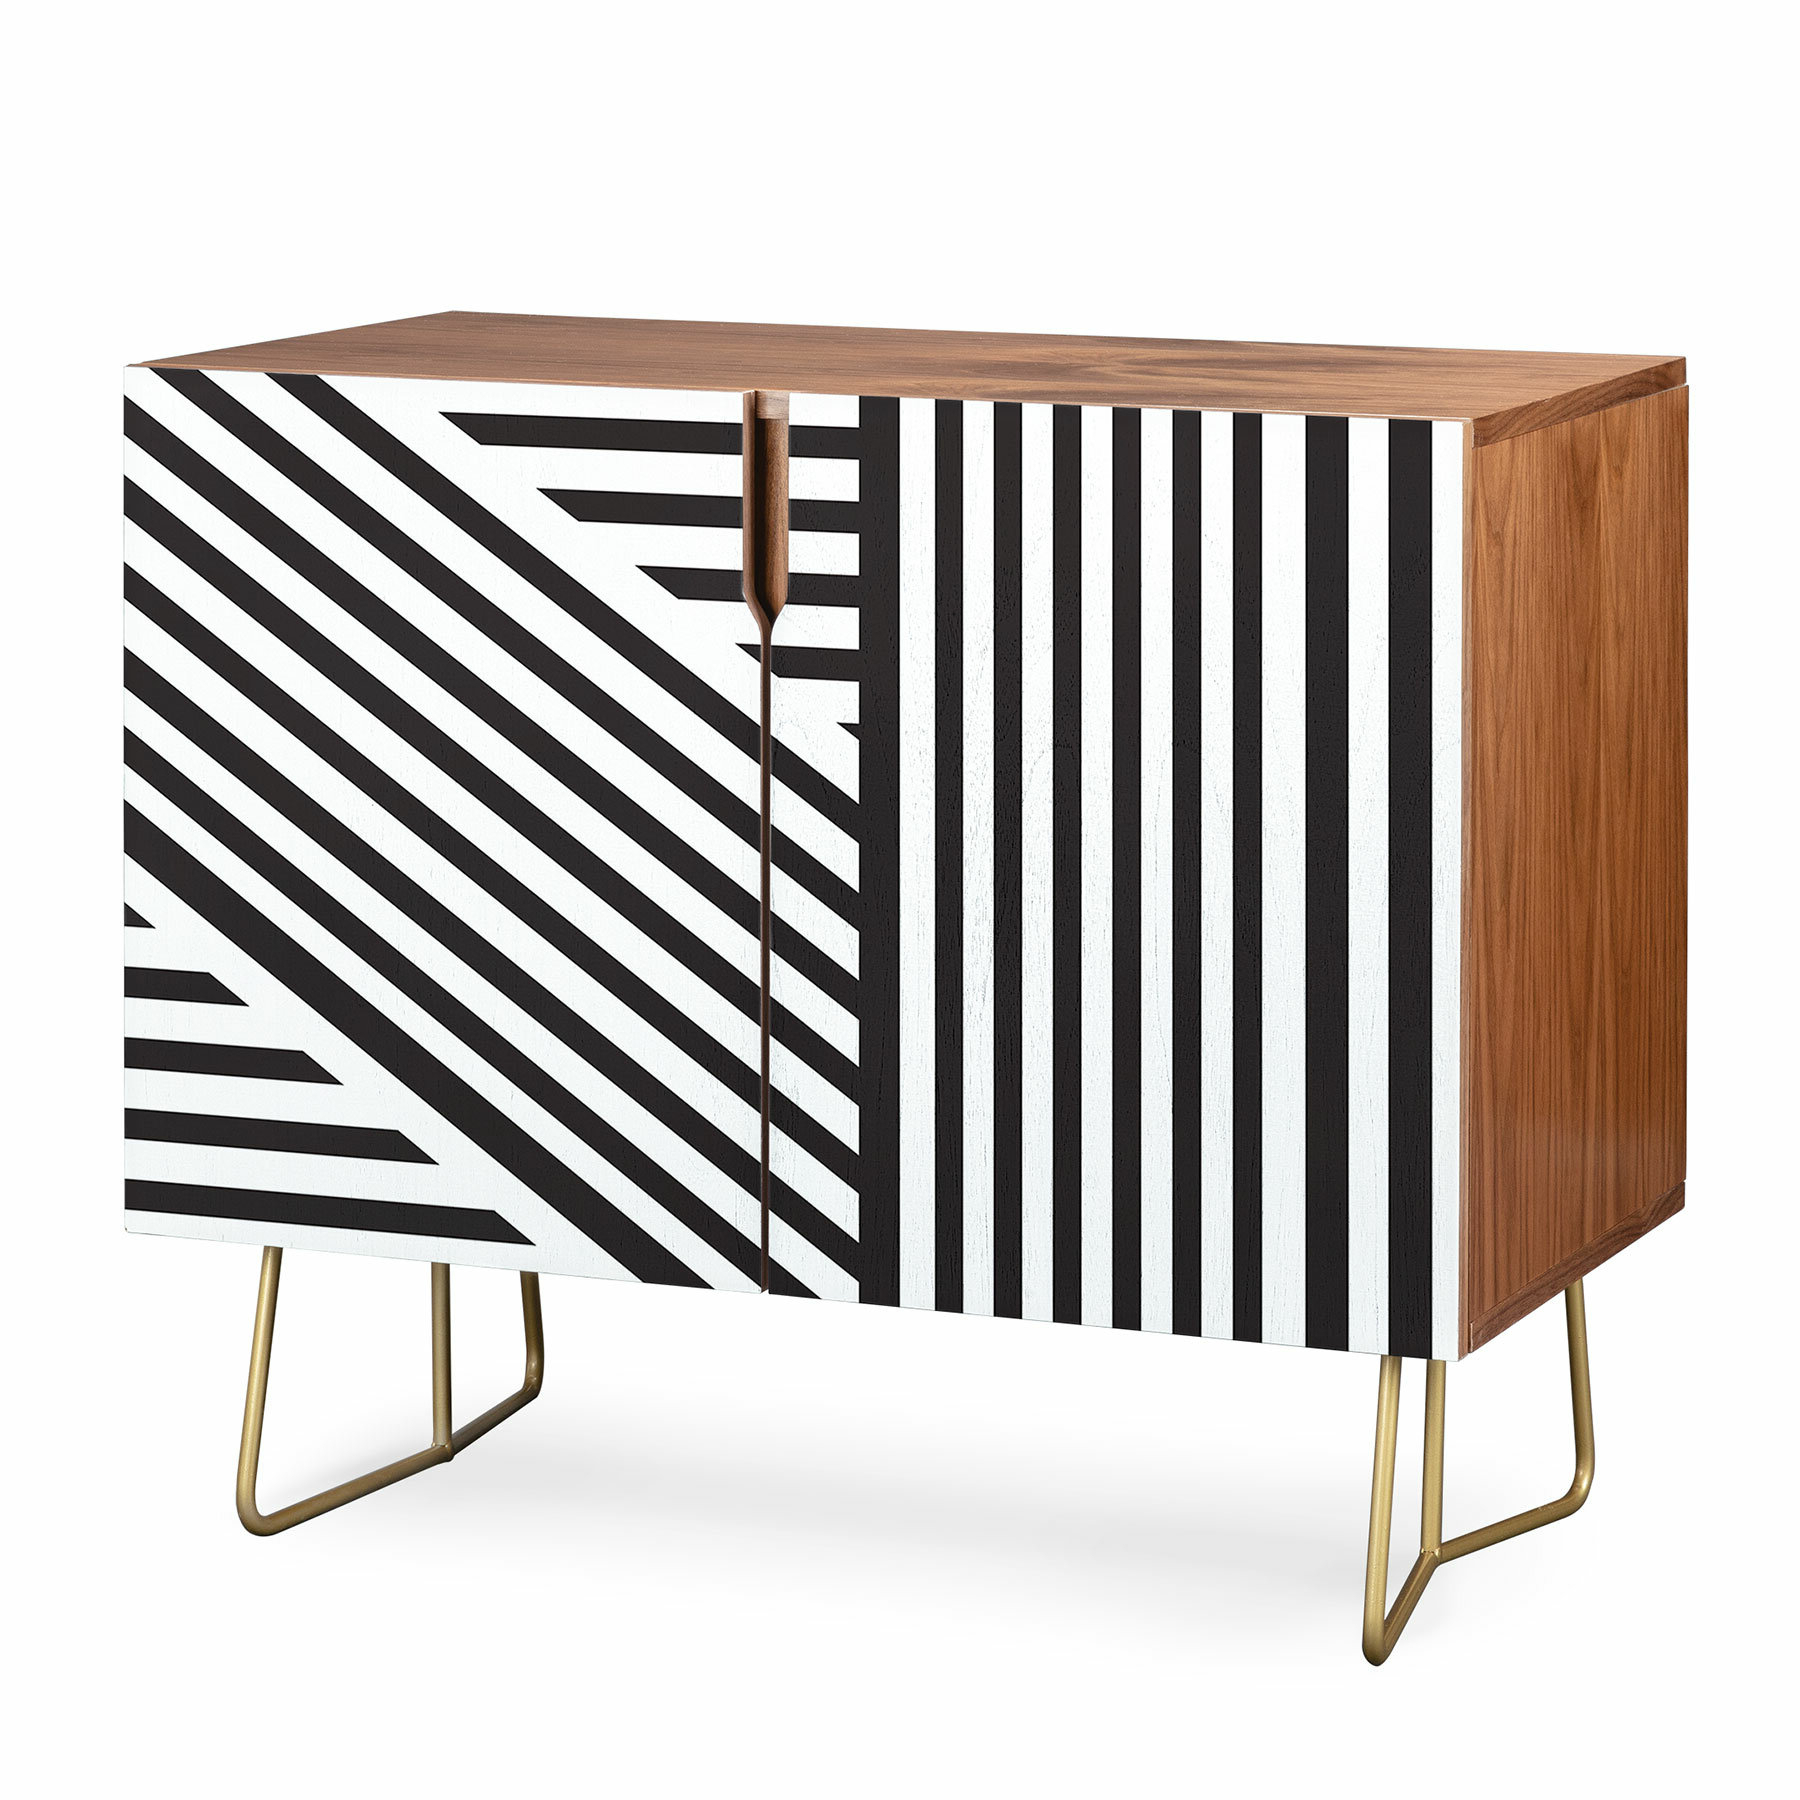 Vy La Everything Nice Credenza Pertaining To Emerald Cubes Credenzas (View 11 of 20)